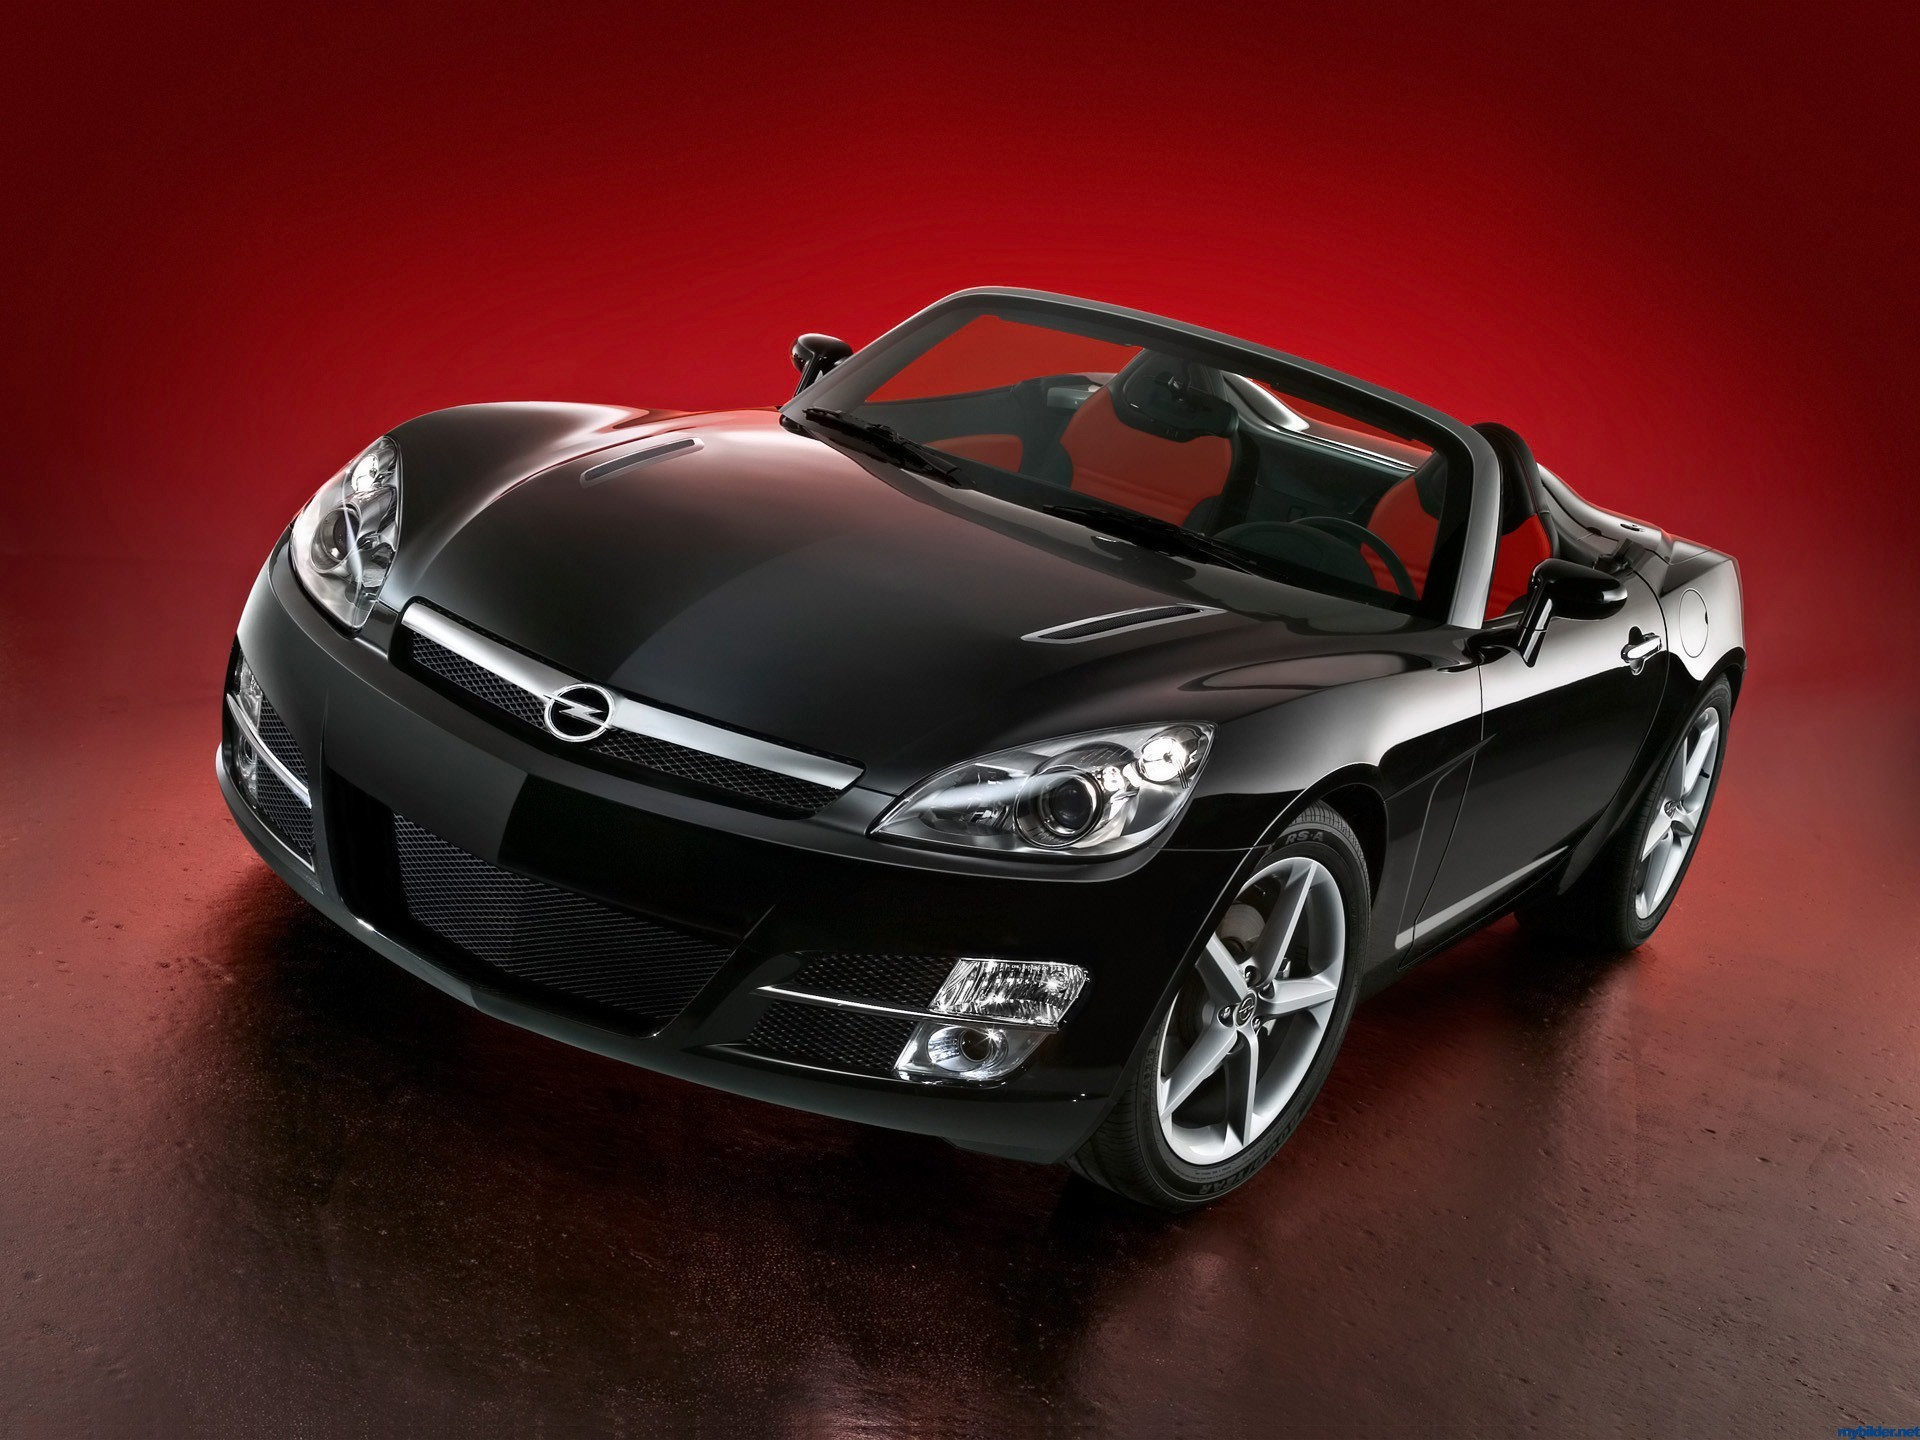 cars vehicles black cars HD Wallpaper